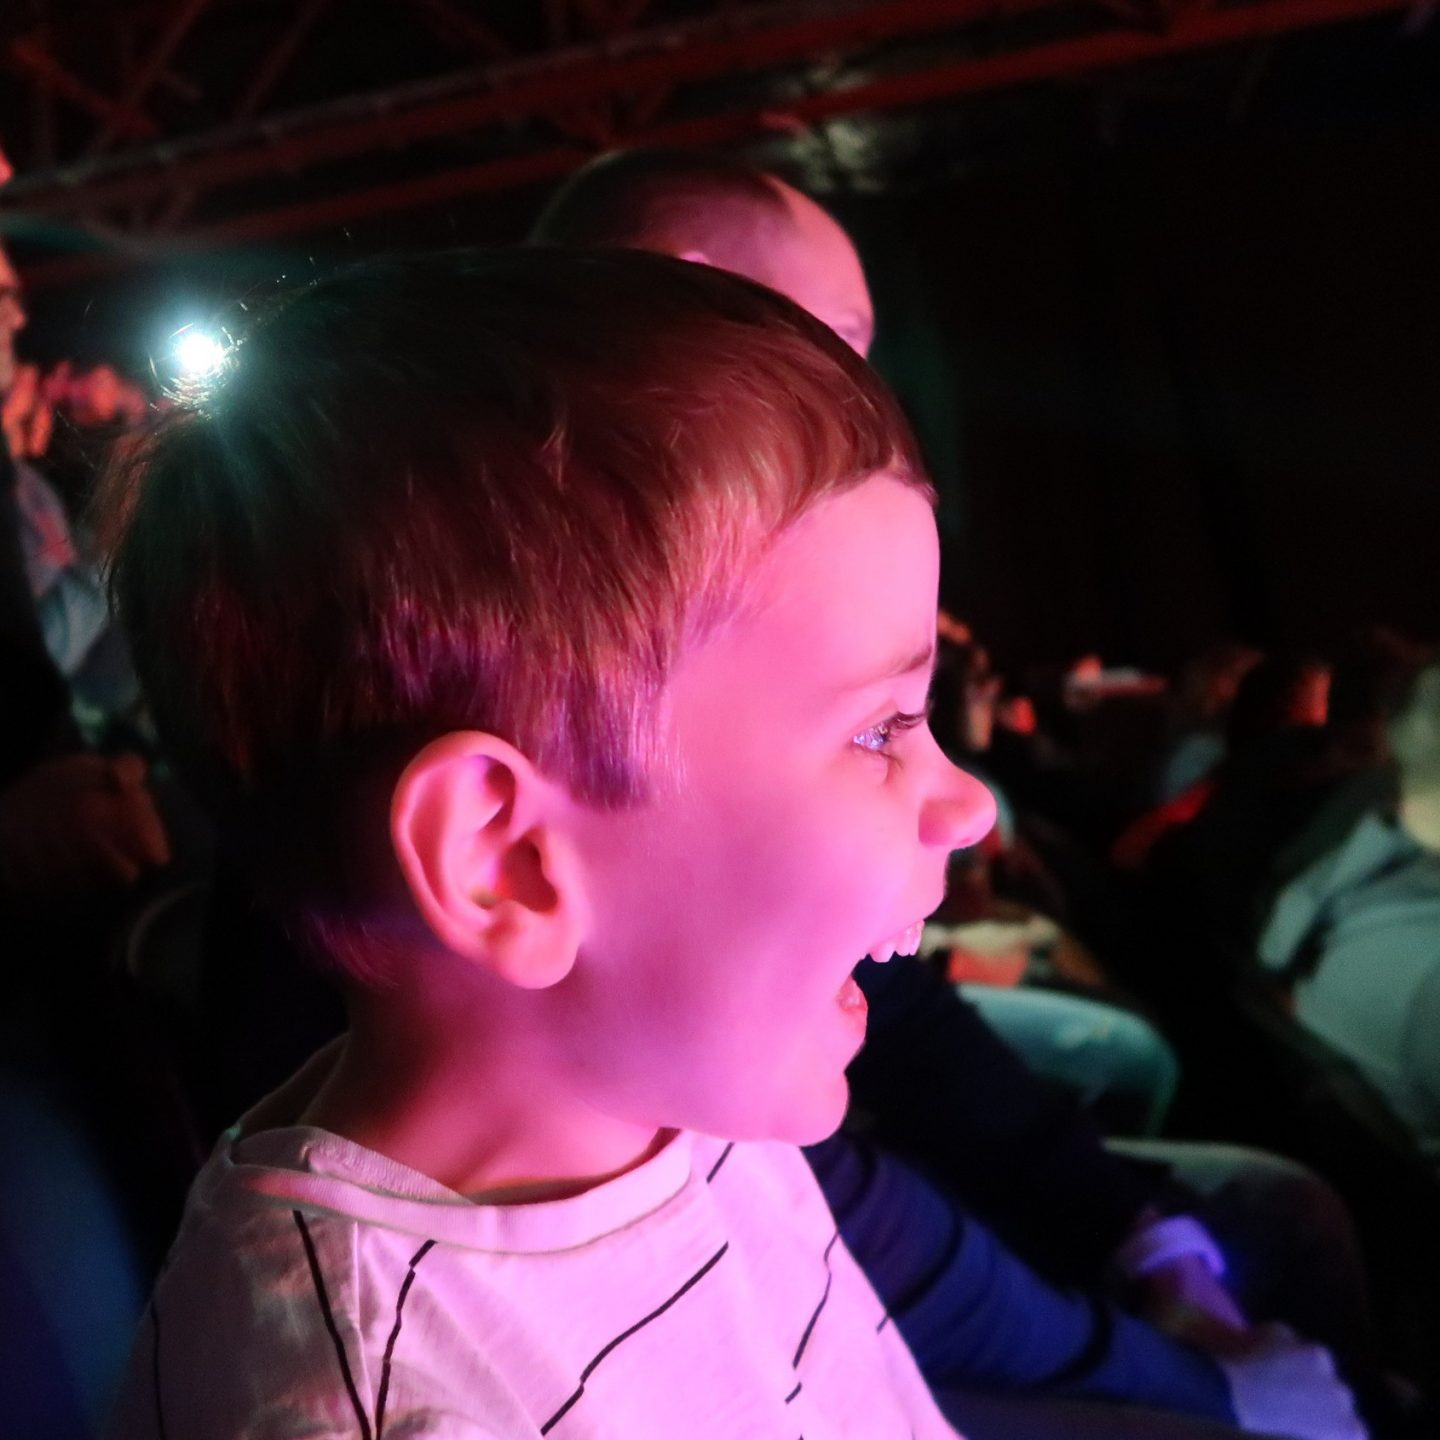 Biggest watching Disney on Ice with a look of wonder on his face.